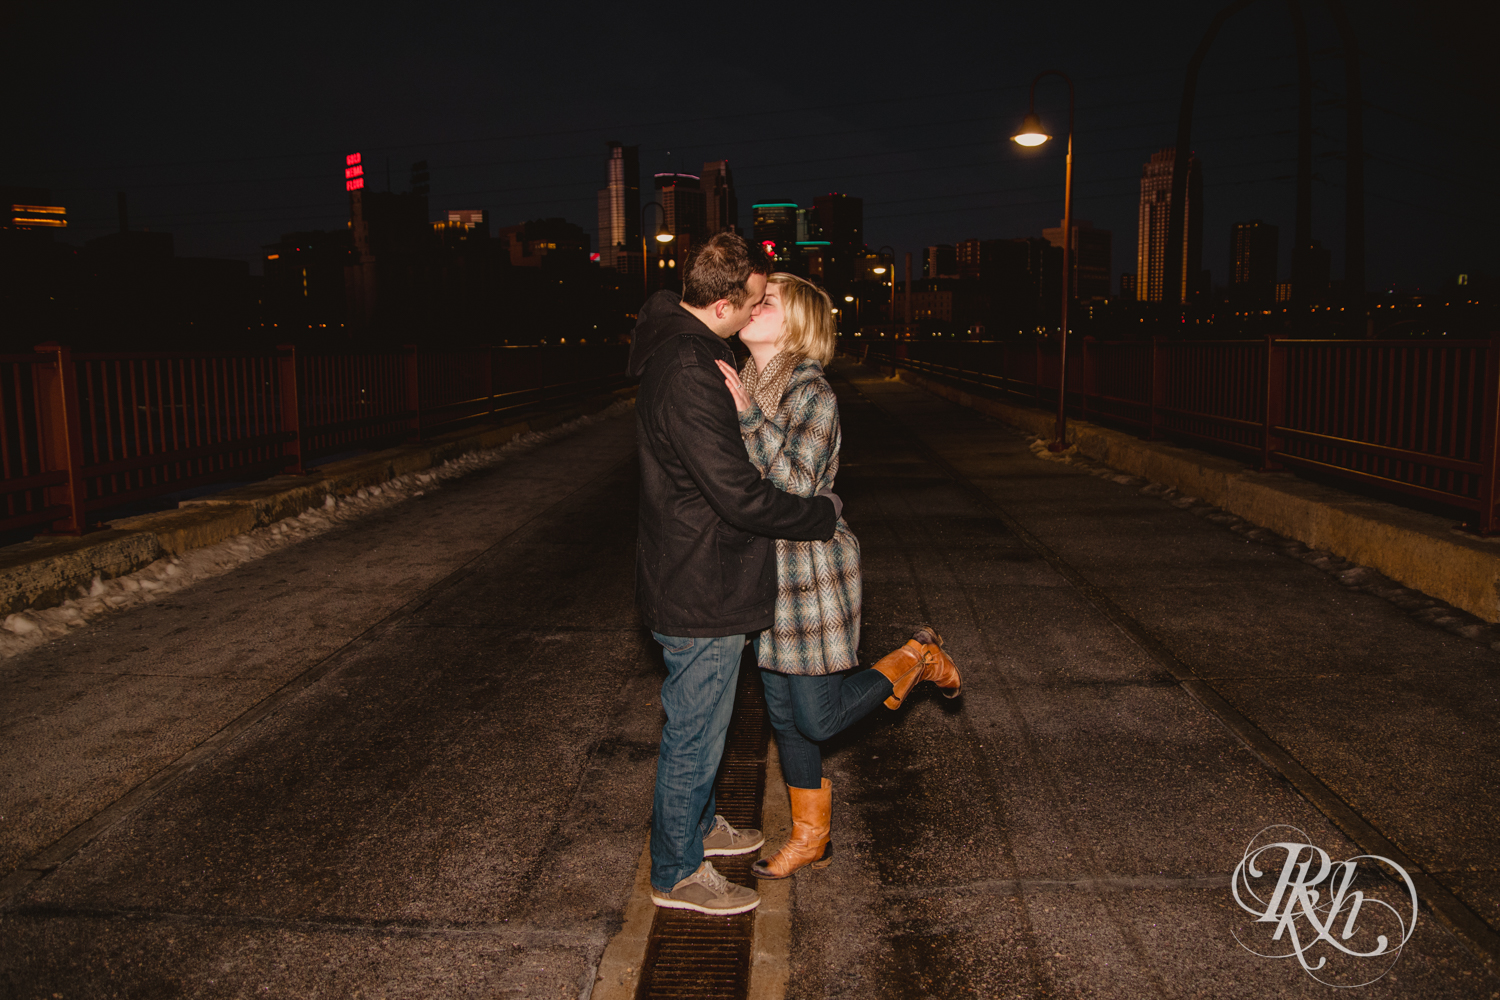 Kate & Kyle - Minnesota Sunrise Engagement Photography - Stone Arch Bridge - RKH Images (2 of 18).jpg